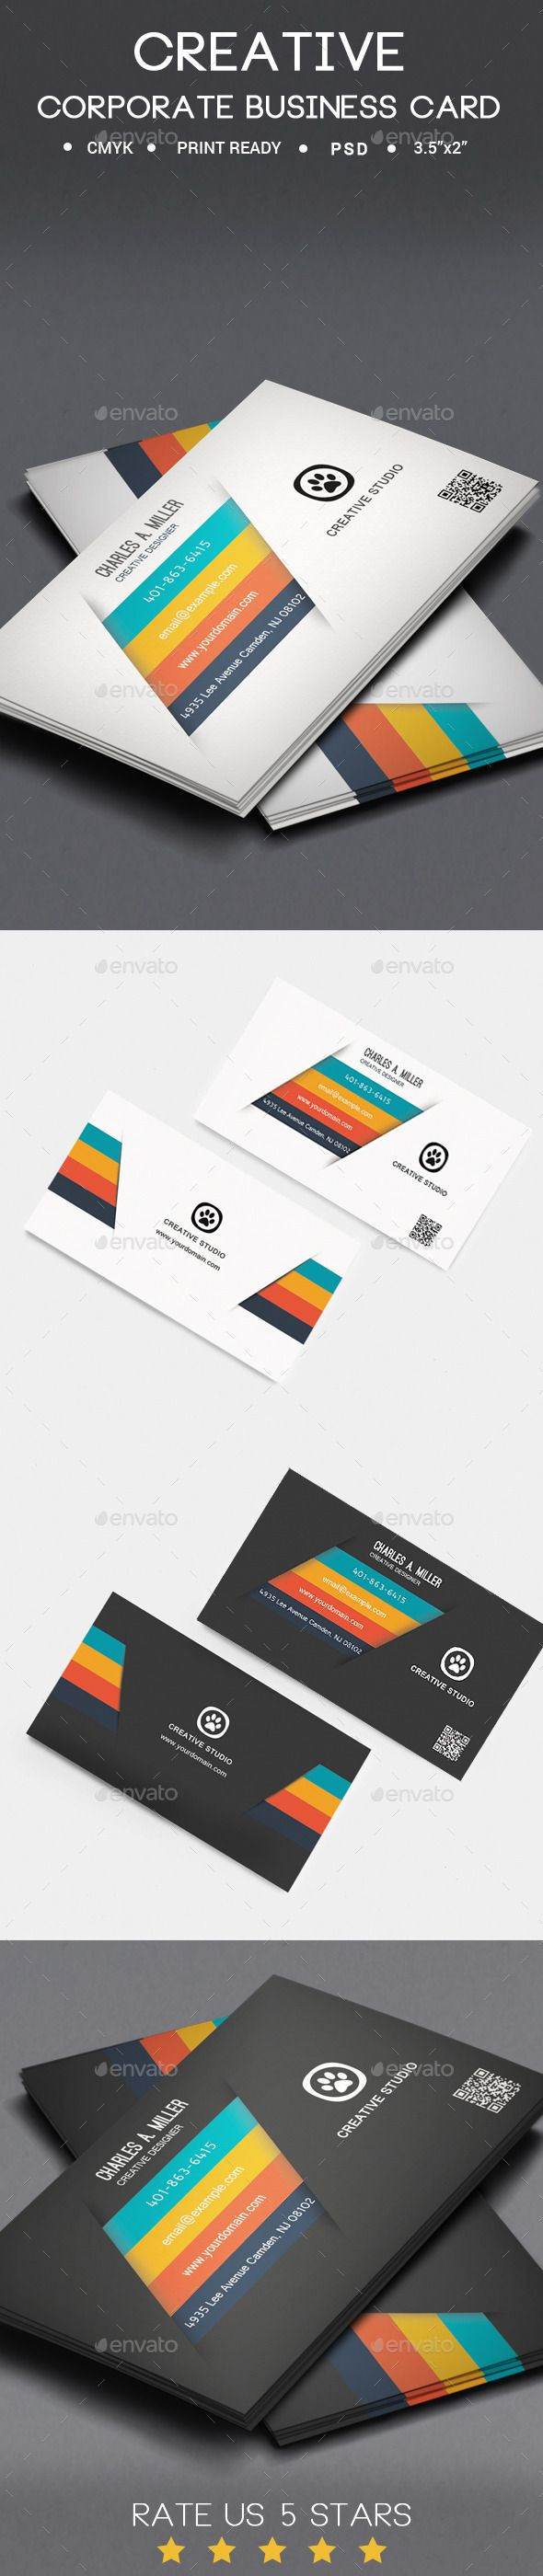 Creative corporate business card business card design templates creative corporate business card design template creative business cards template psd reheart Gallery